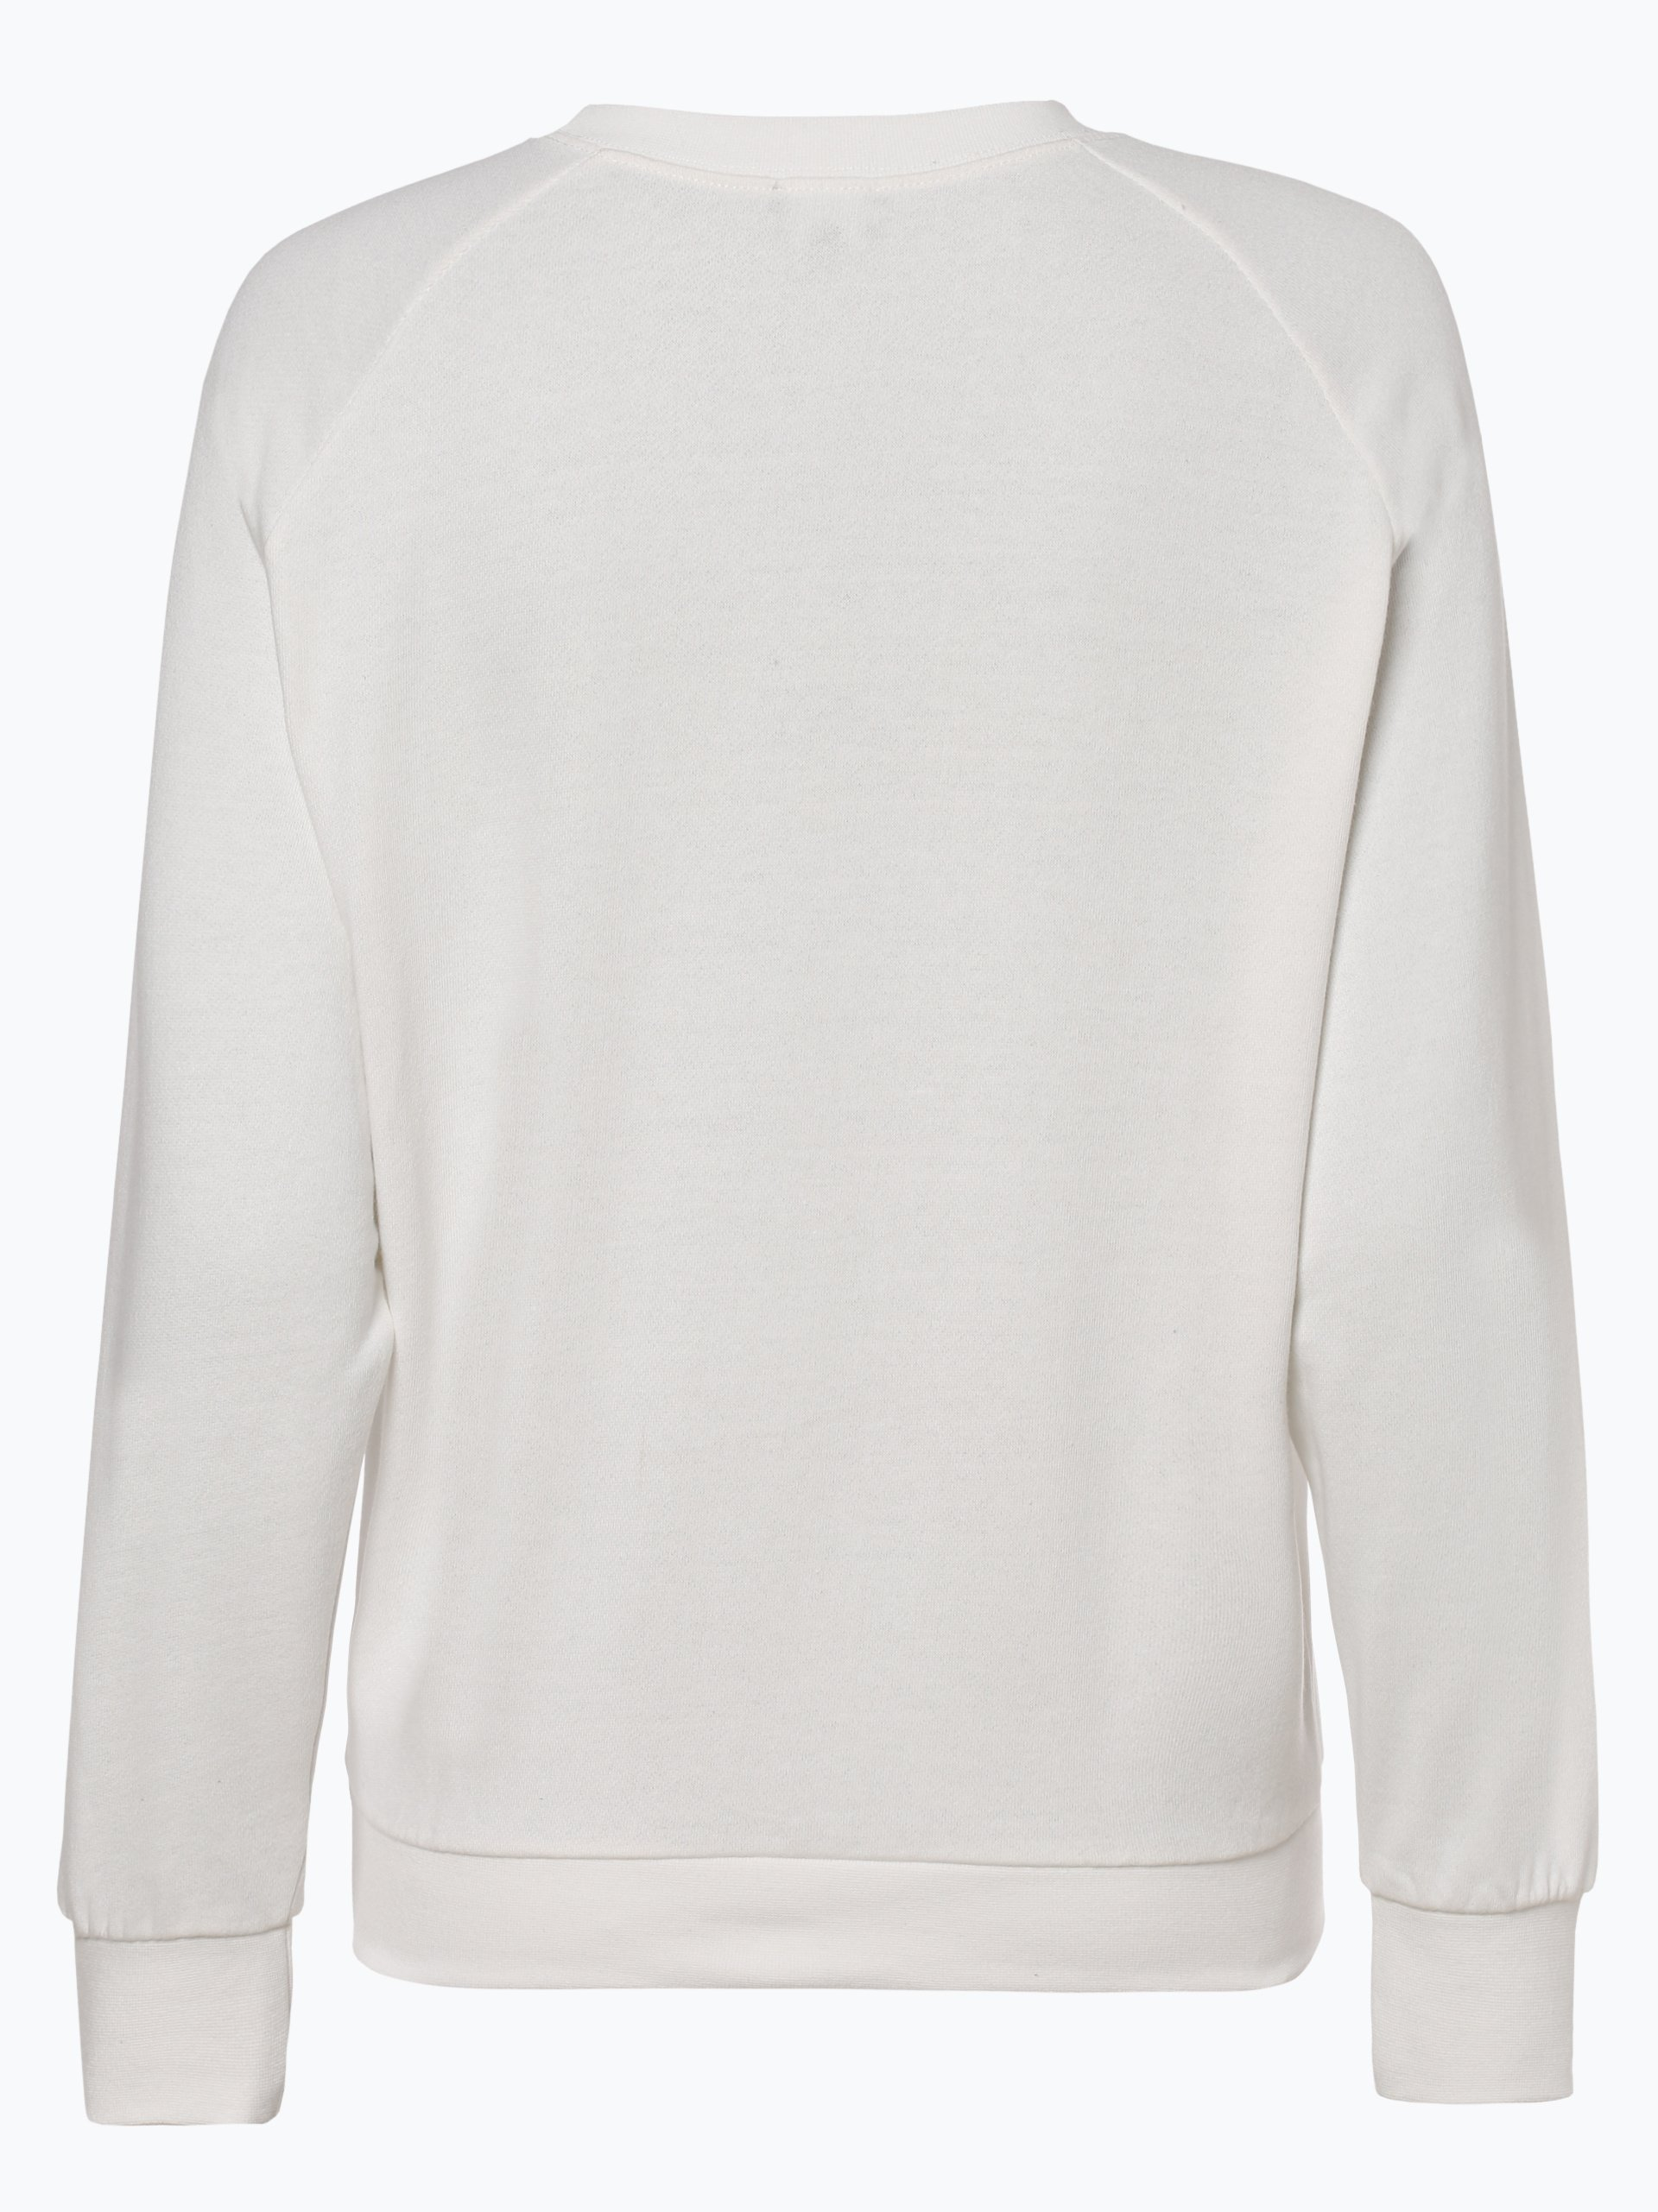 Aygill\'s Damen Sweatshirt